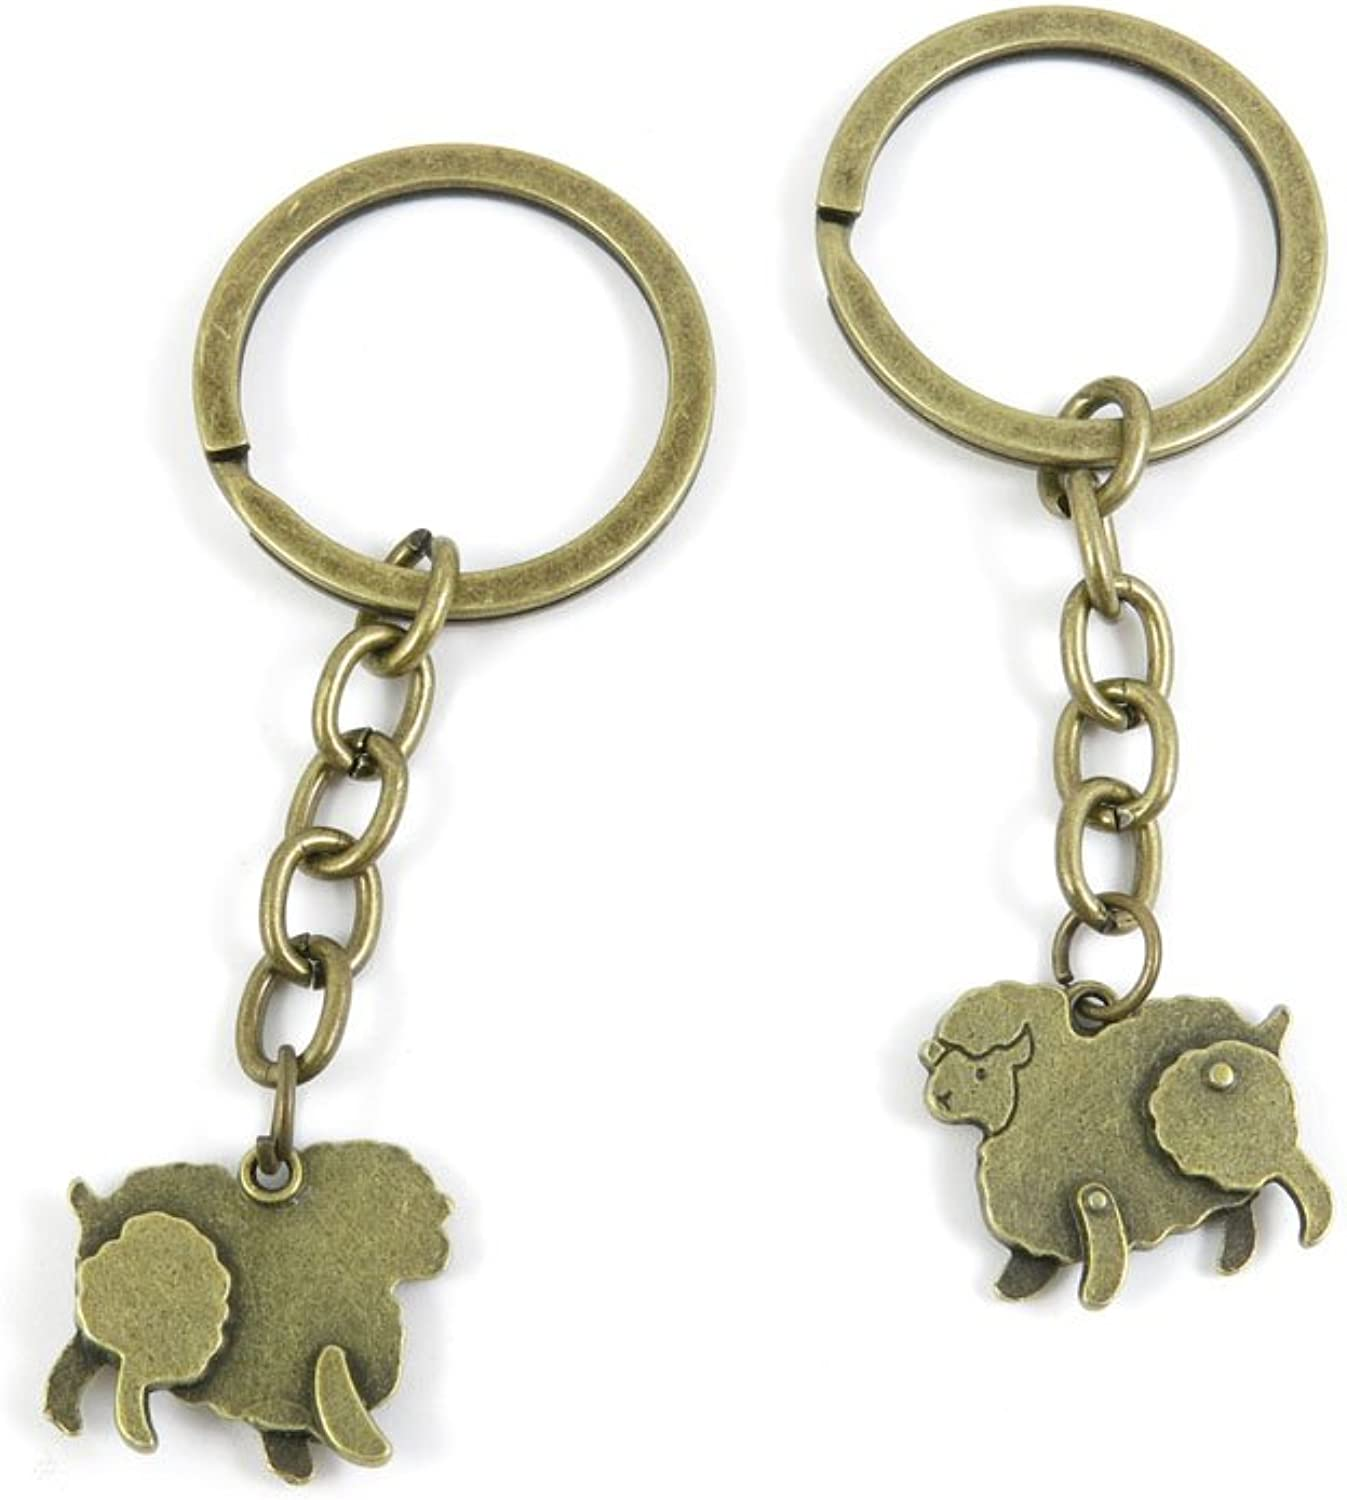 190 Pieces Fashion Jewelry Keyring Keychain Door Car Key Tag Ring Chain Supplier Supply Wholesale Bulk Lots R8DF0 Sheep